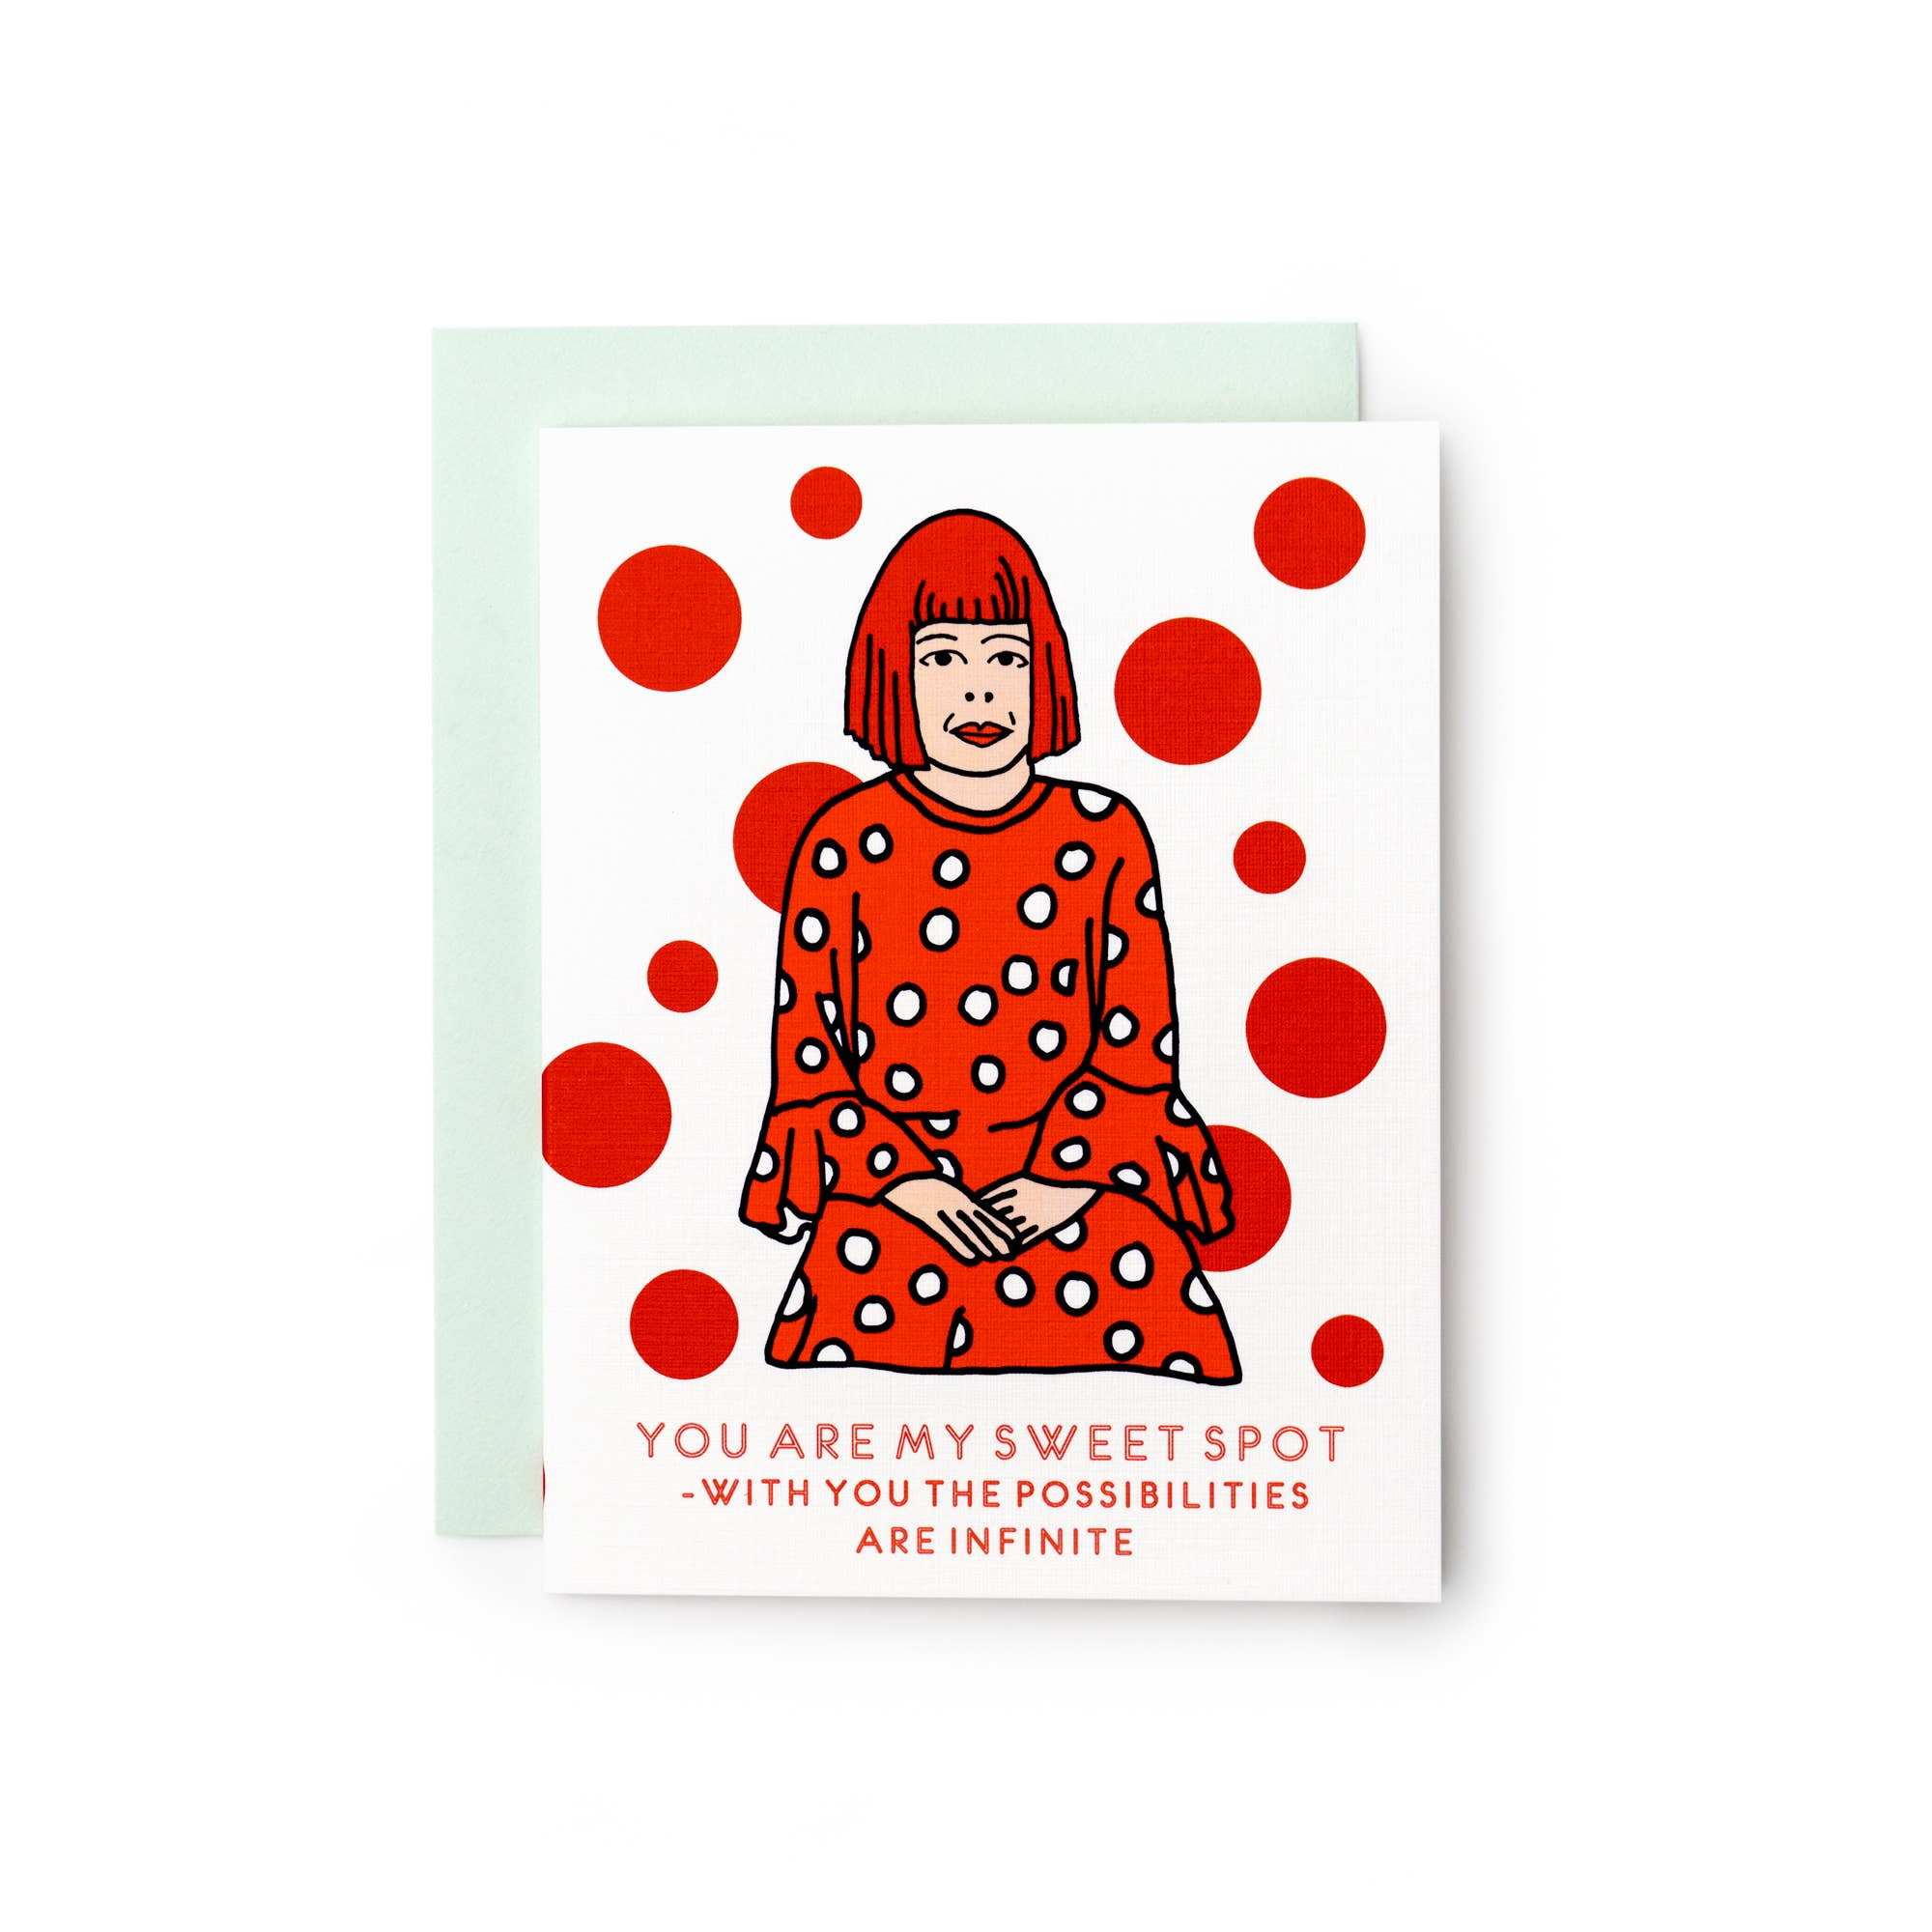 ilootpaperie card reads you are my sweet spot = with you the possibilities are infinite, features yayoi kusama and red polka dots